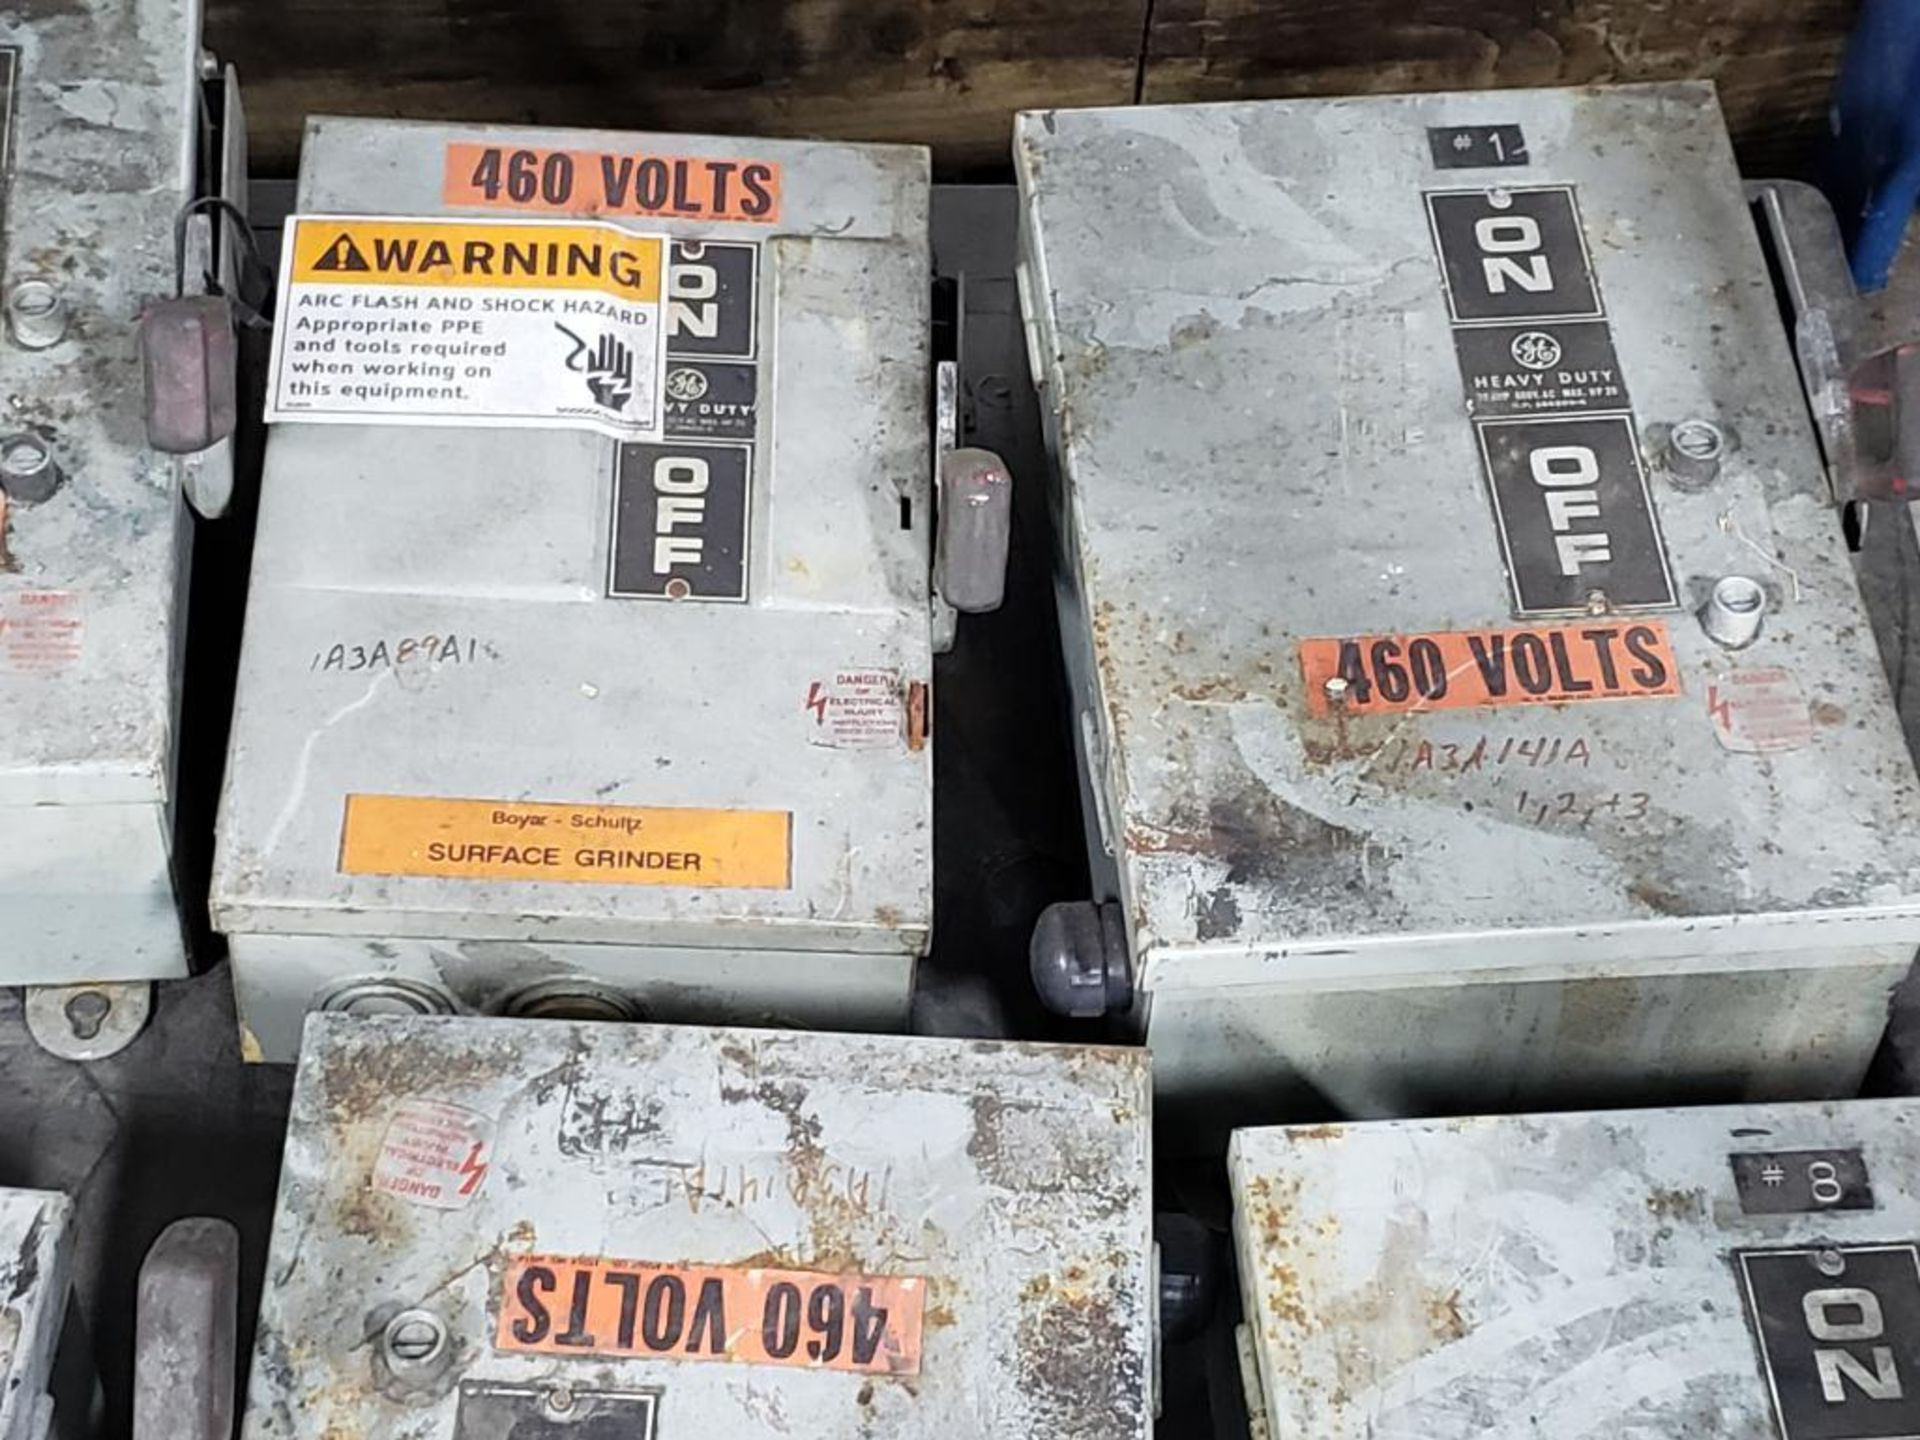 Lot 140 - Qty 11 - Assorted GE disconnects on pallet.